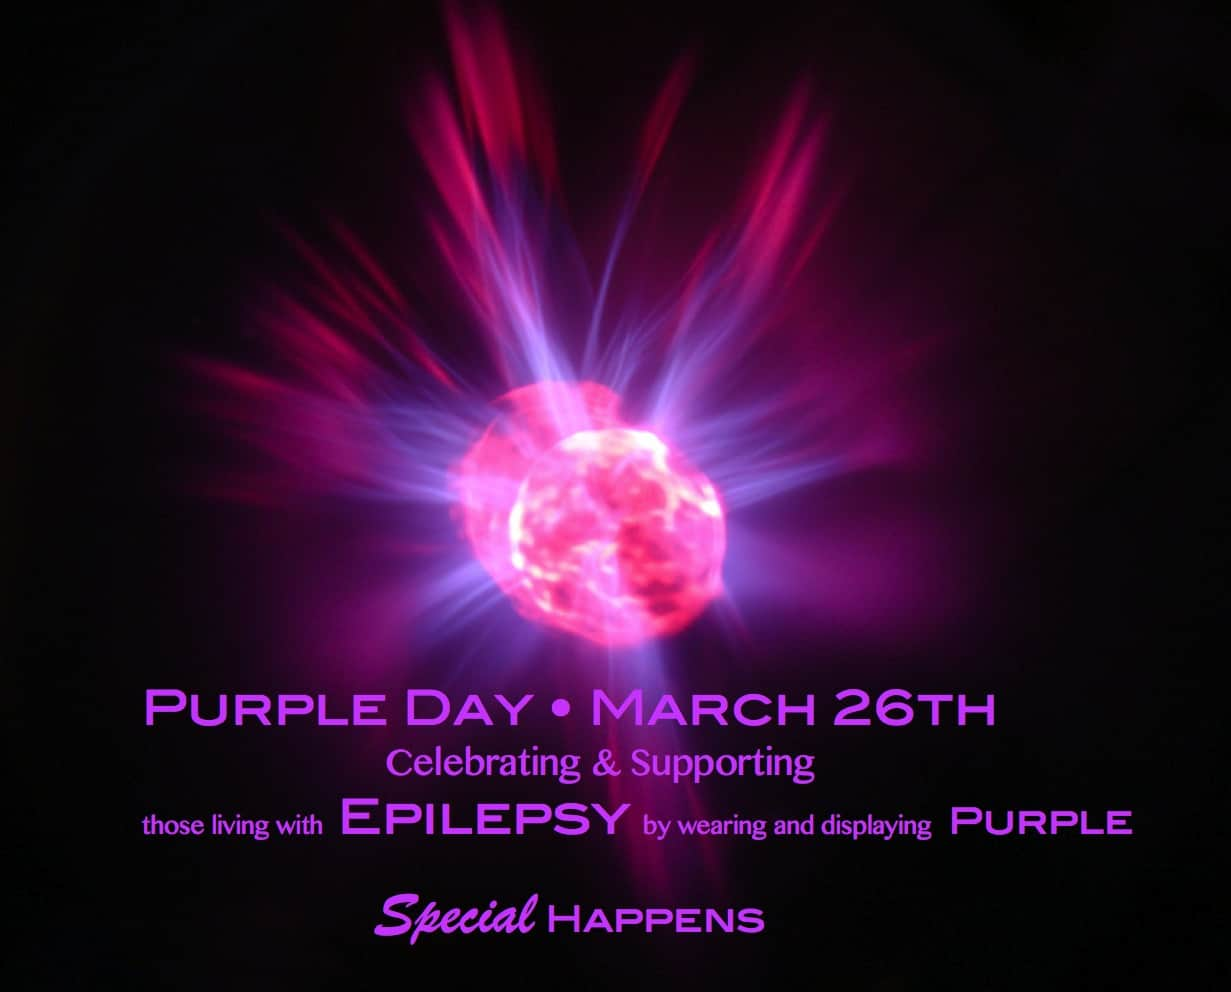 Spreading Epilepsy Awareness March 26th